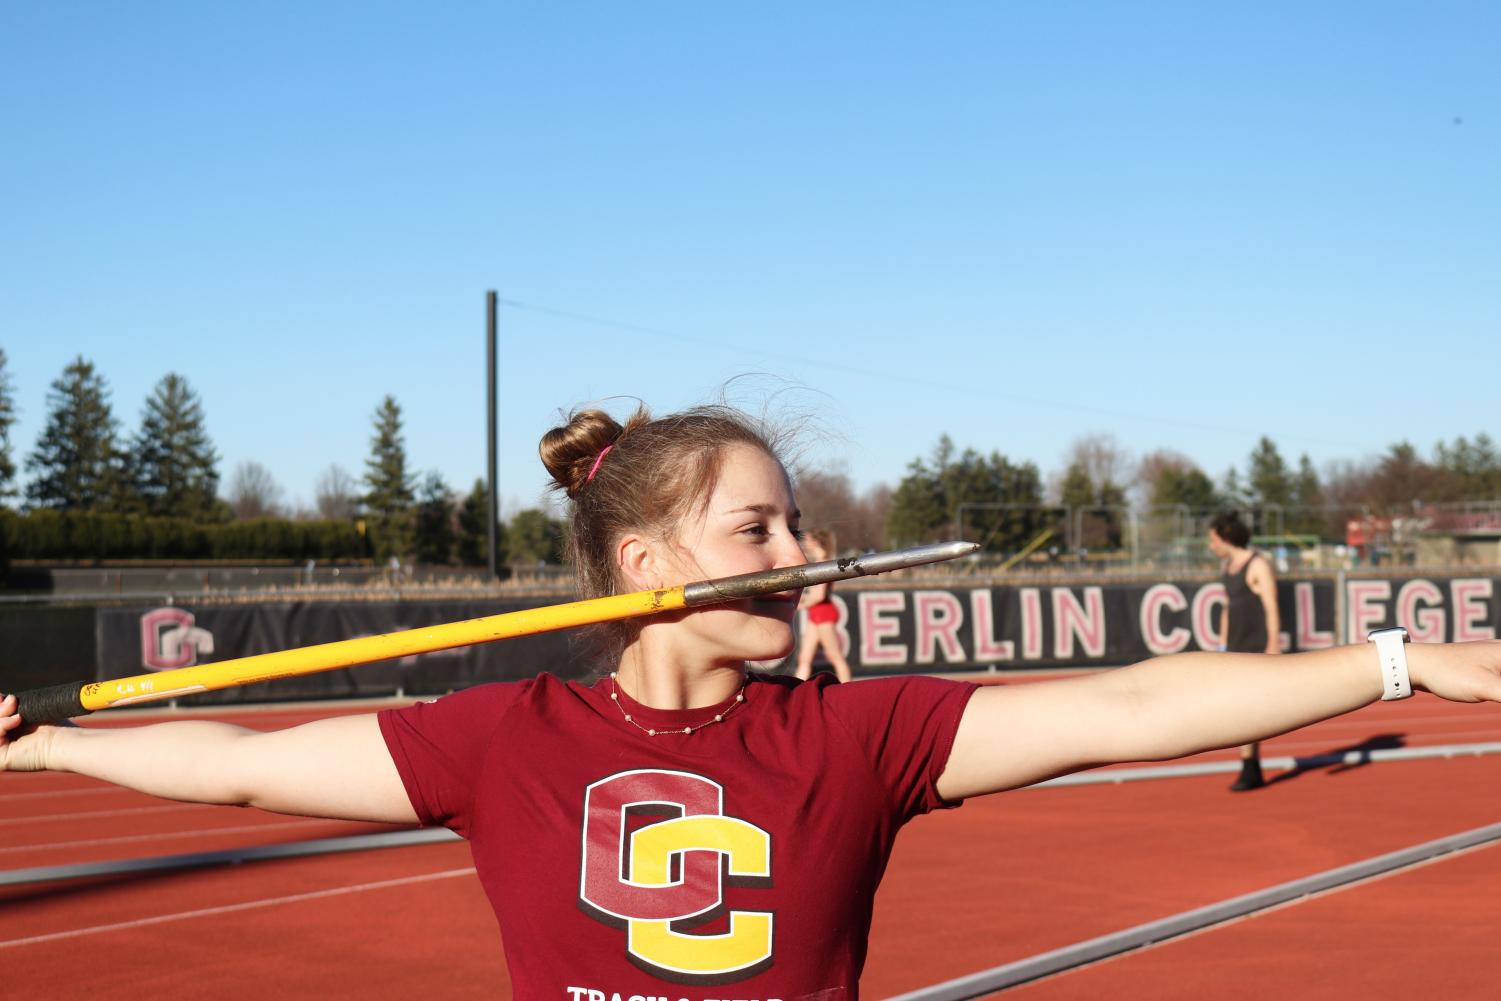 After three years as a member of the softball team, College senior Millie Cavicchio has found a new home with track and field and is shining in the javelin. Cavicchio has overcome many obstacles throughout her college experience, including thoracic outlet syndrome and ankle surgery.